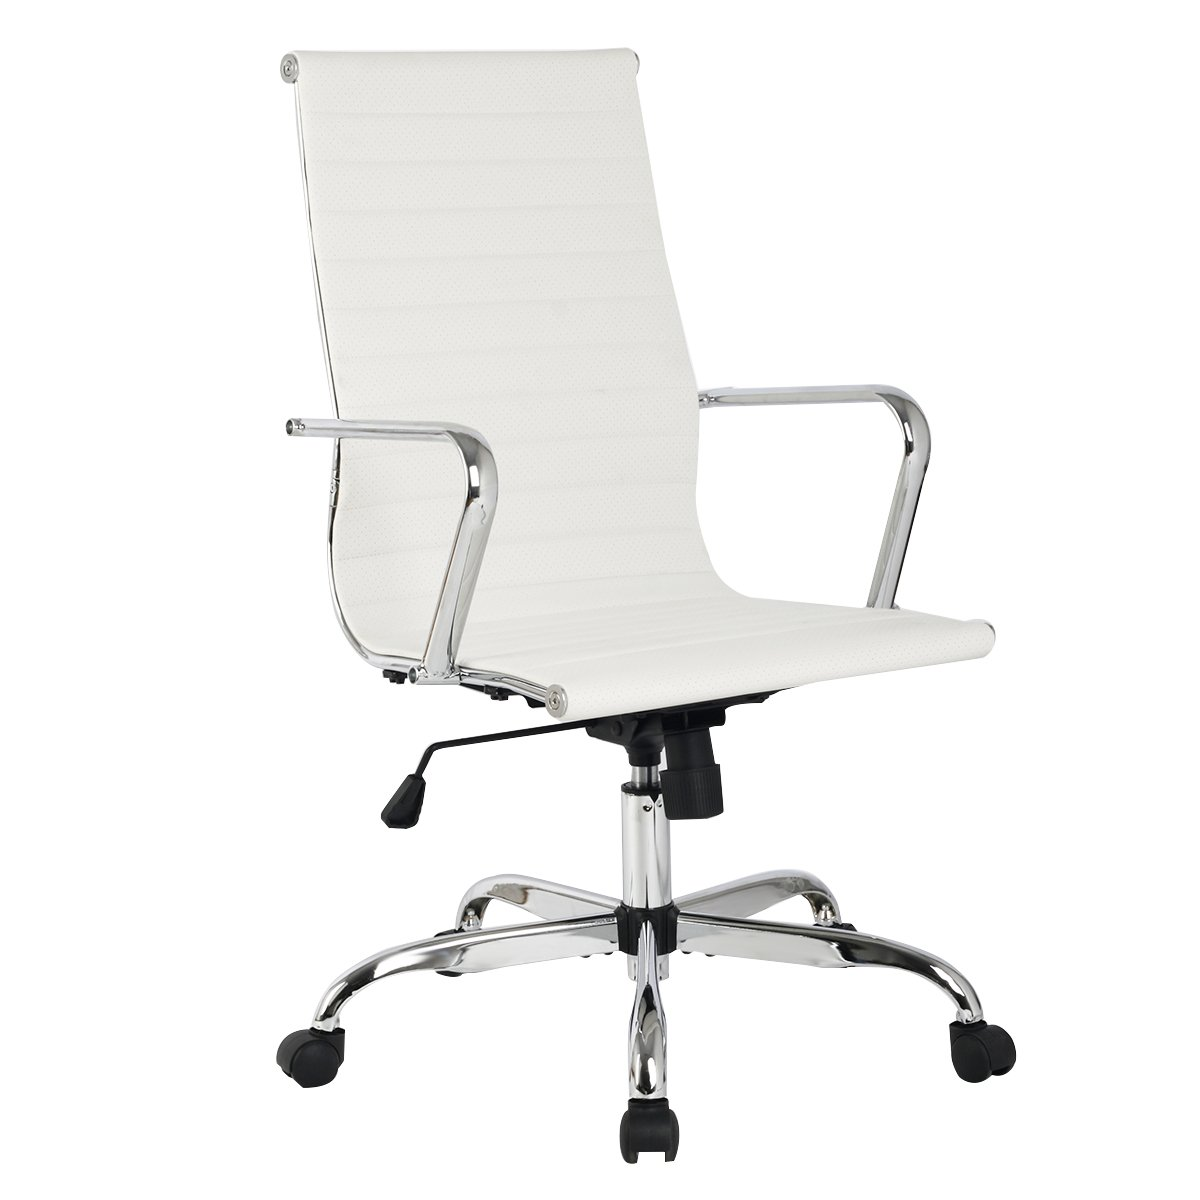 Schreibtischstuhl modern  Costway Modern Ergonomic Office Chair PU Leather High & Med Back ...